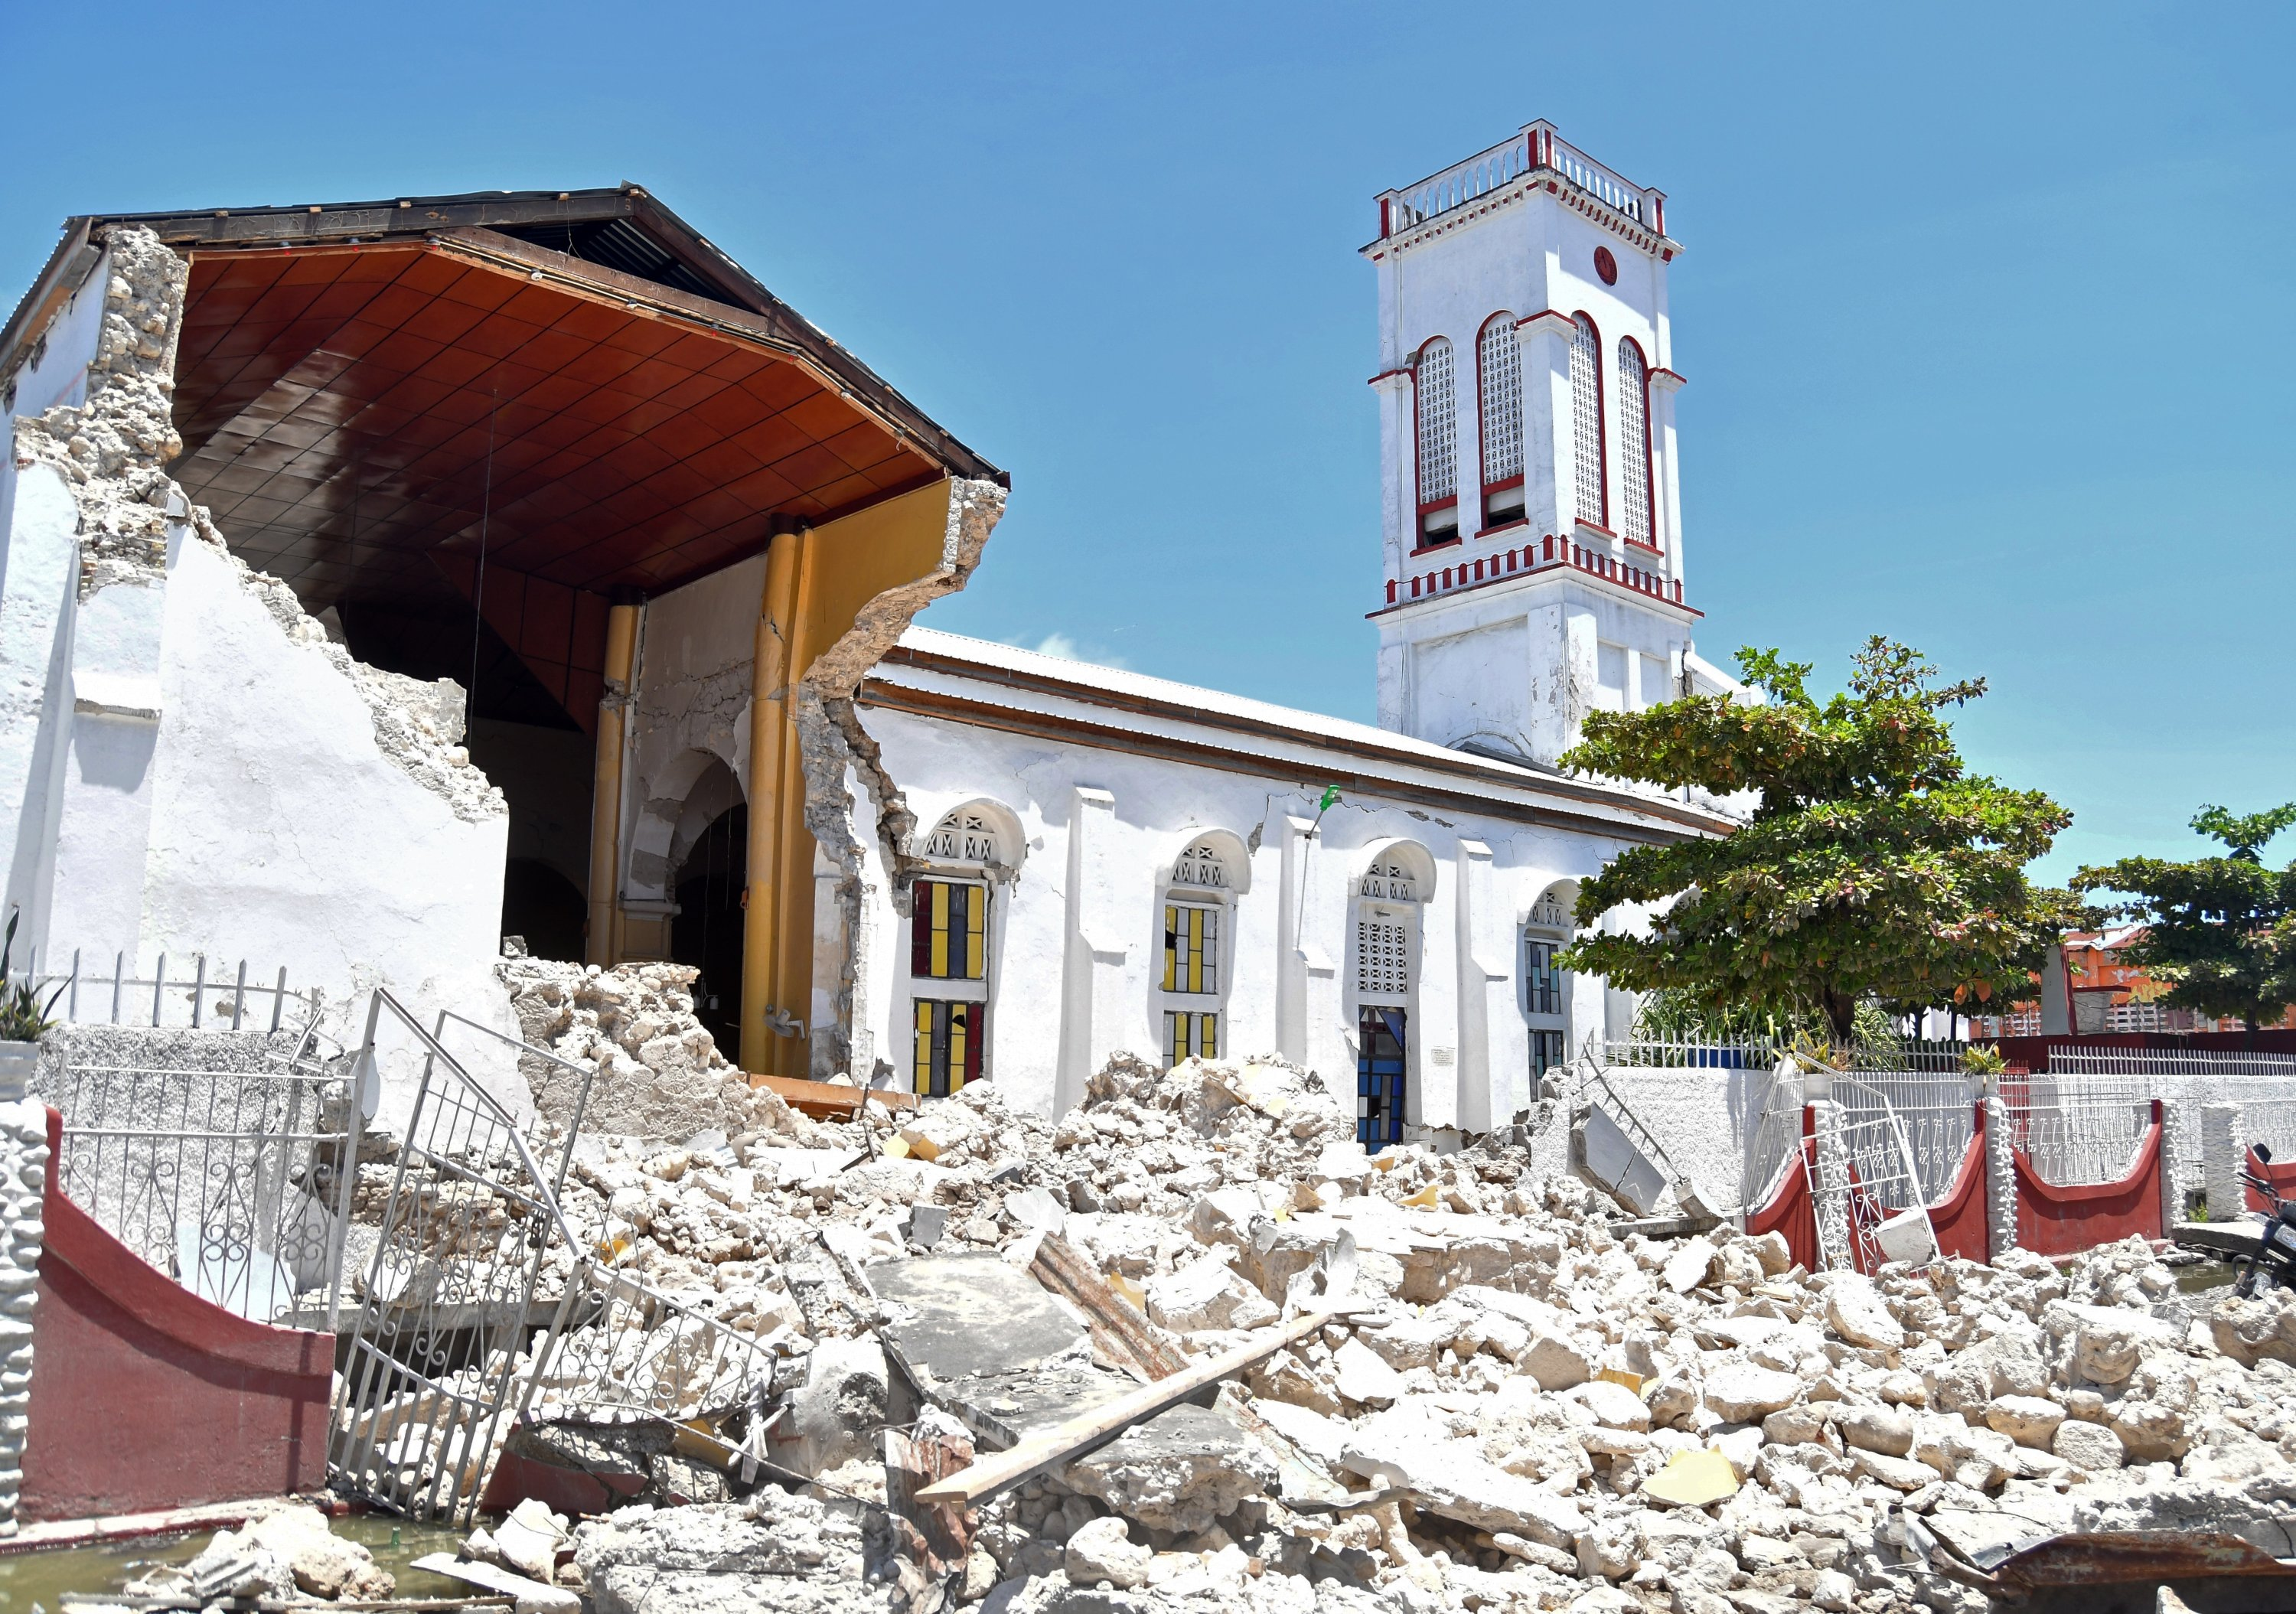 A view of the damage to buildings made by an earthquake, in Port-au-Prince, Haiti, Aug. 14, 2021. (EPA Photo)